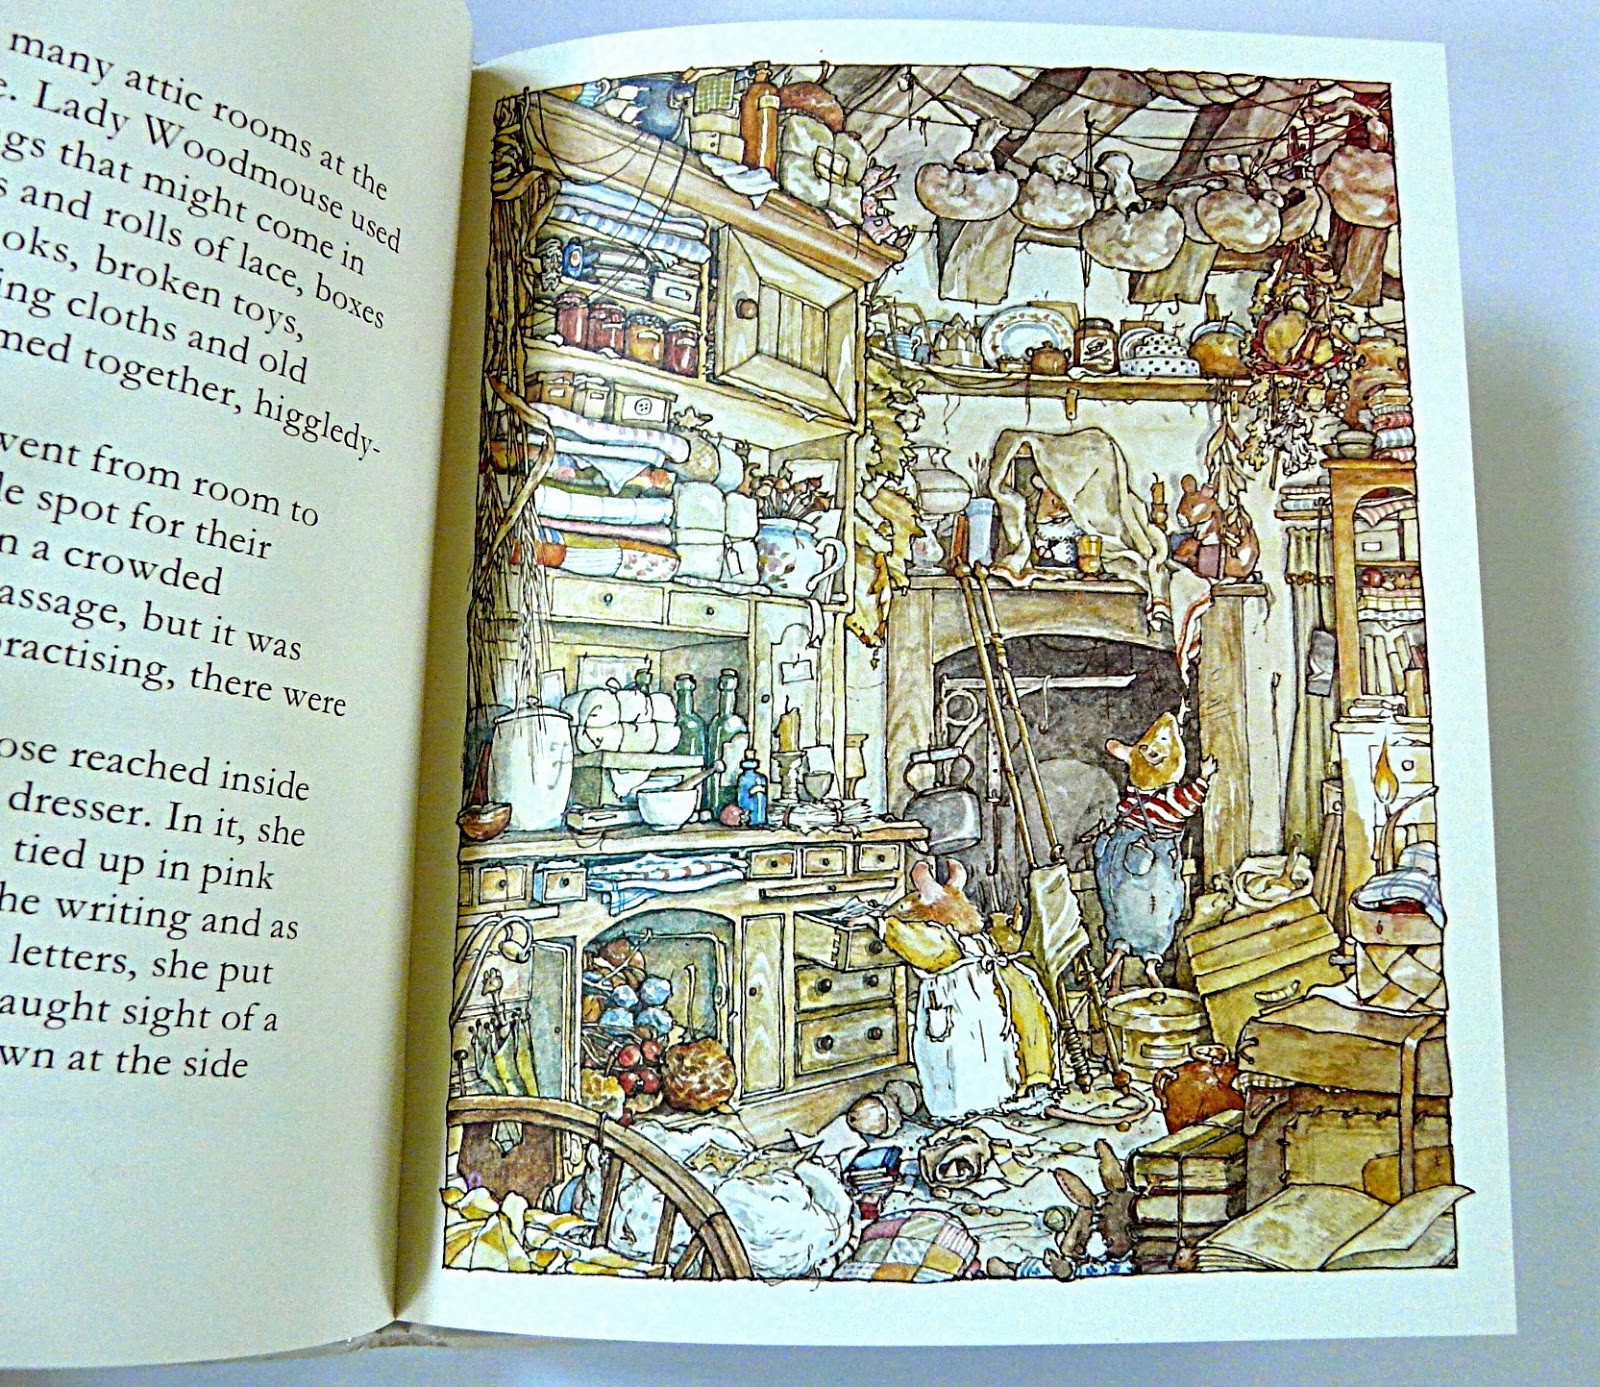 I remember making tiny dressed mice in the 1980's inspired by these books -  I wish I'd kept one of them now!